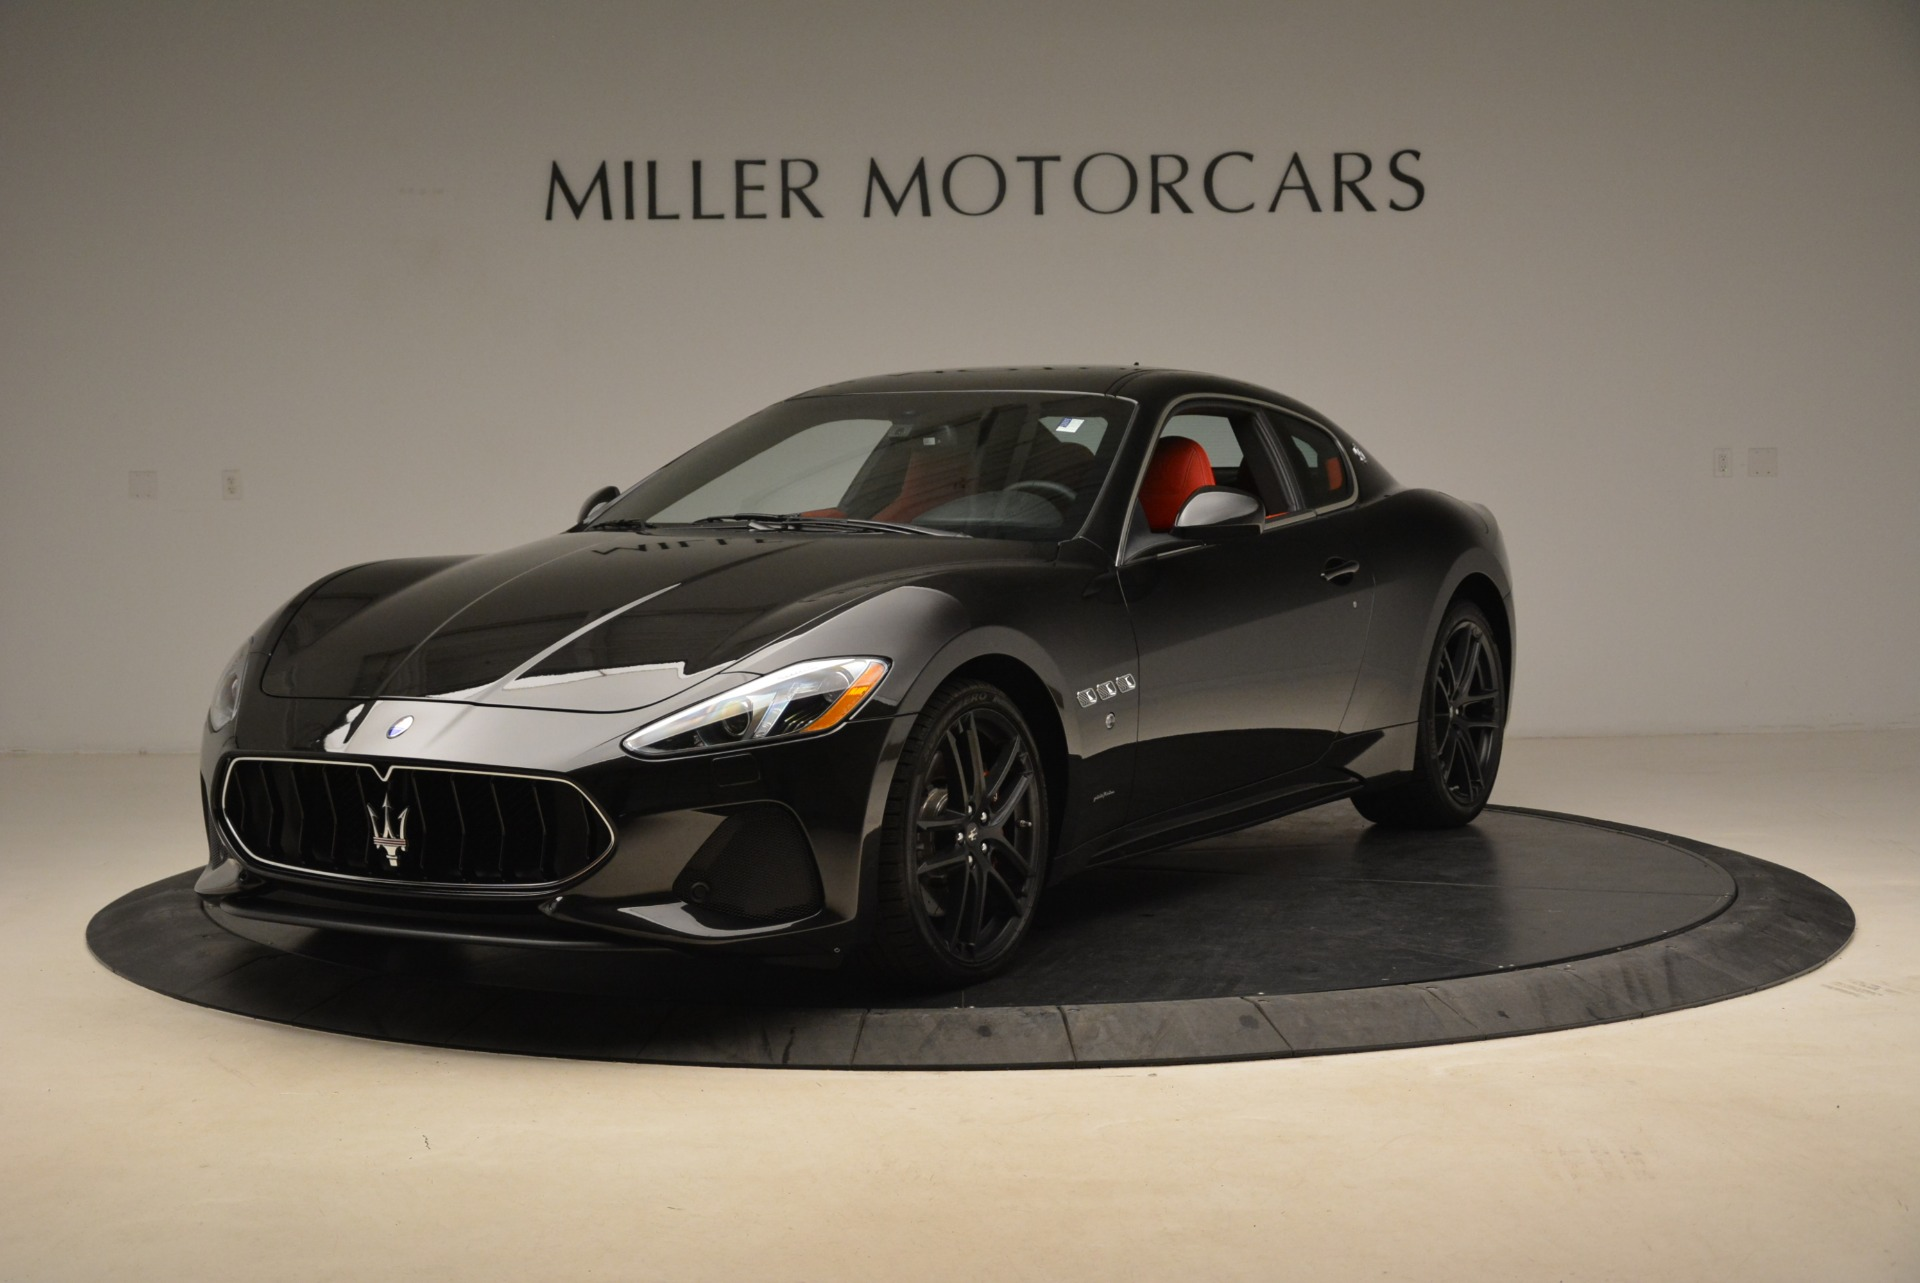 New 2018 Maserati GranTurismo Sport for sale Sold at Maserati of Westport in Westport CT 06880 1